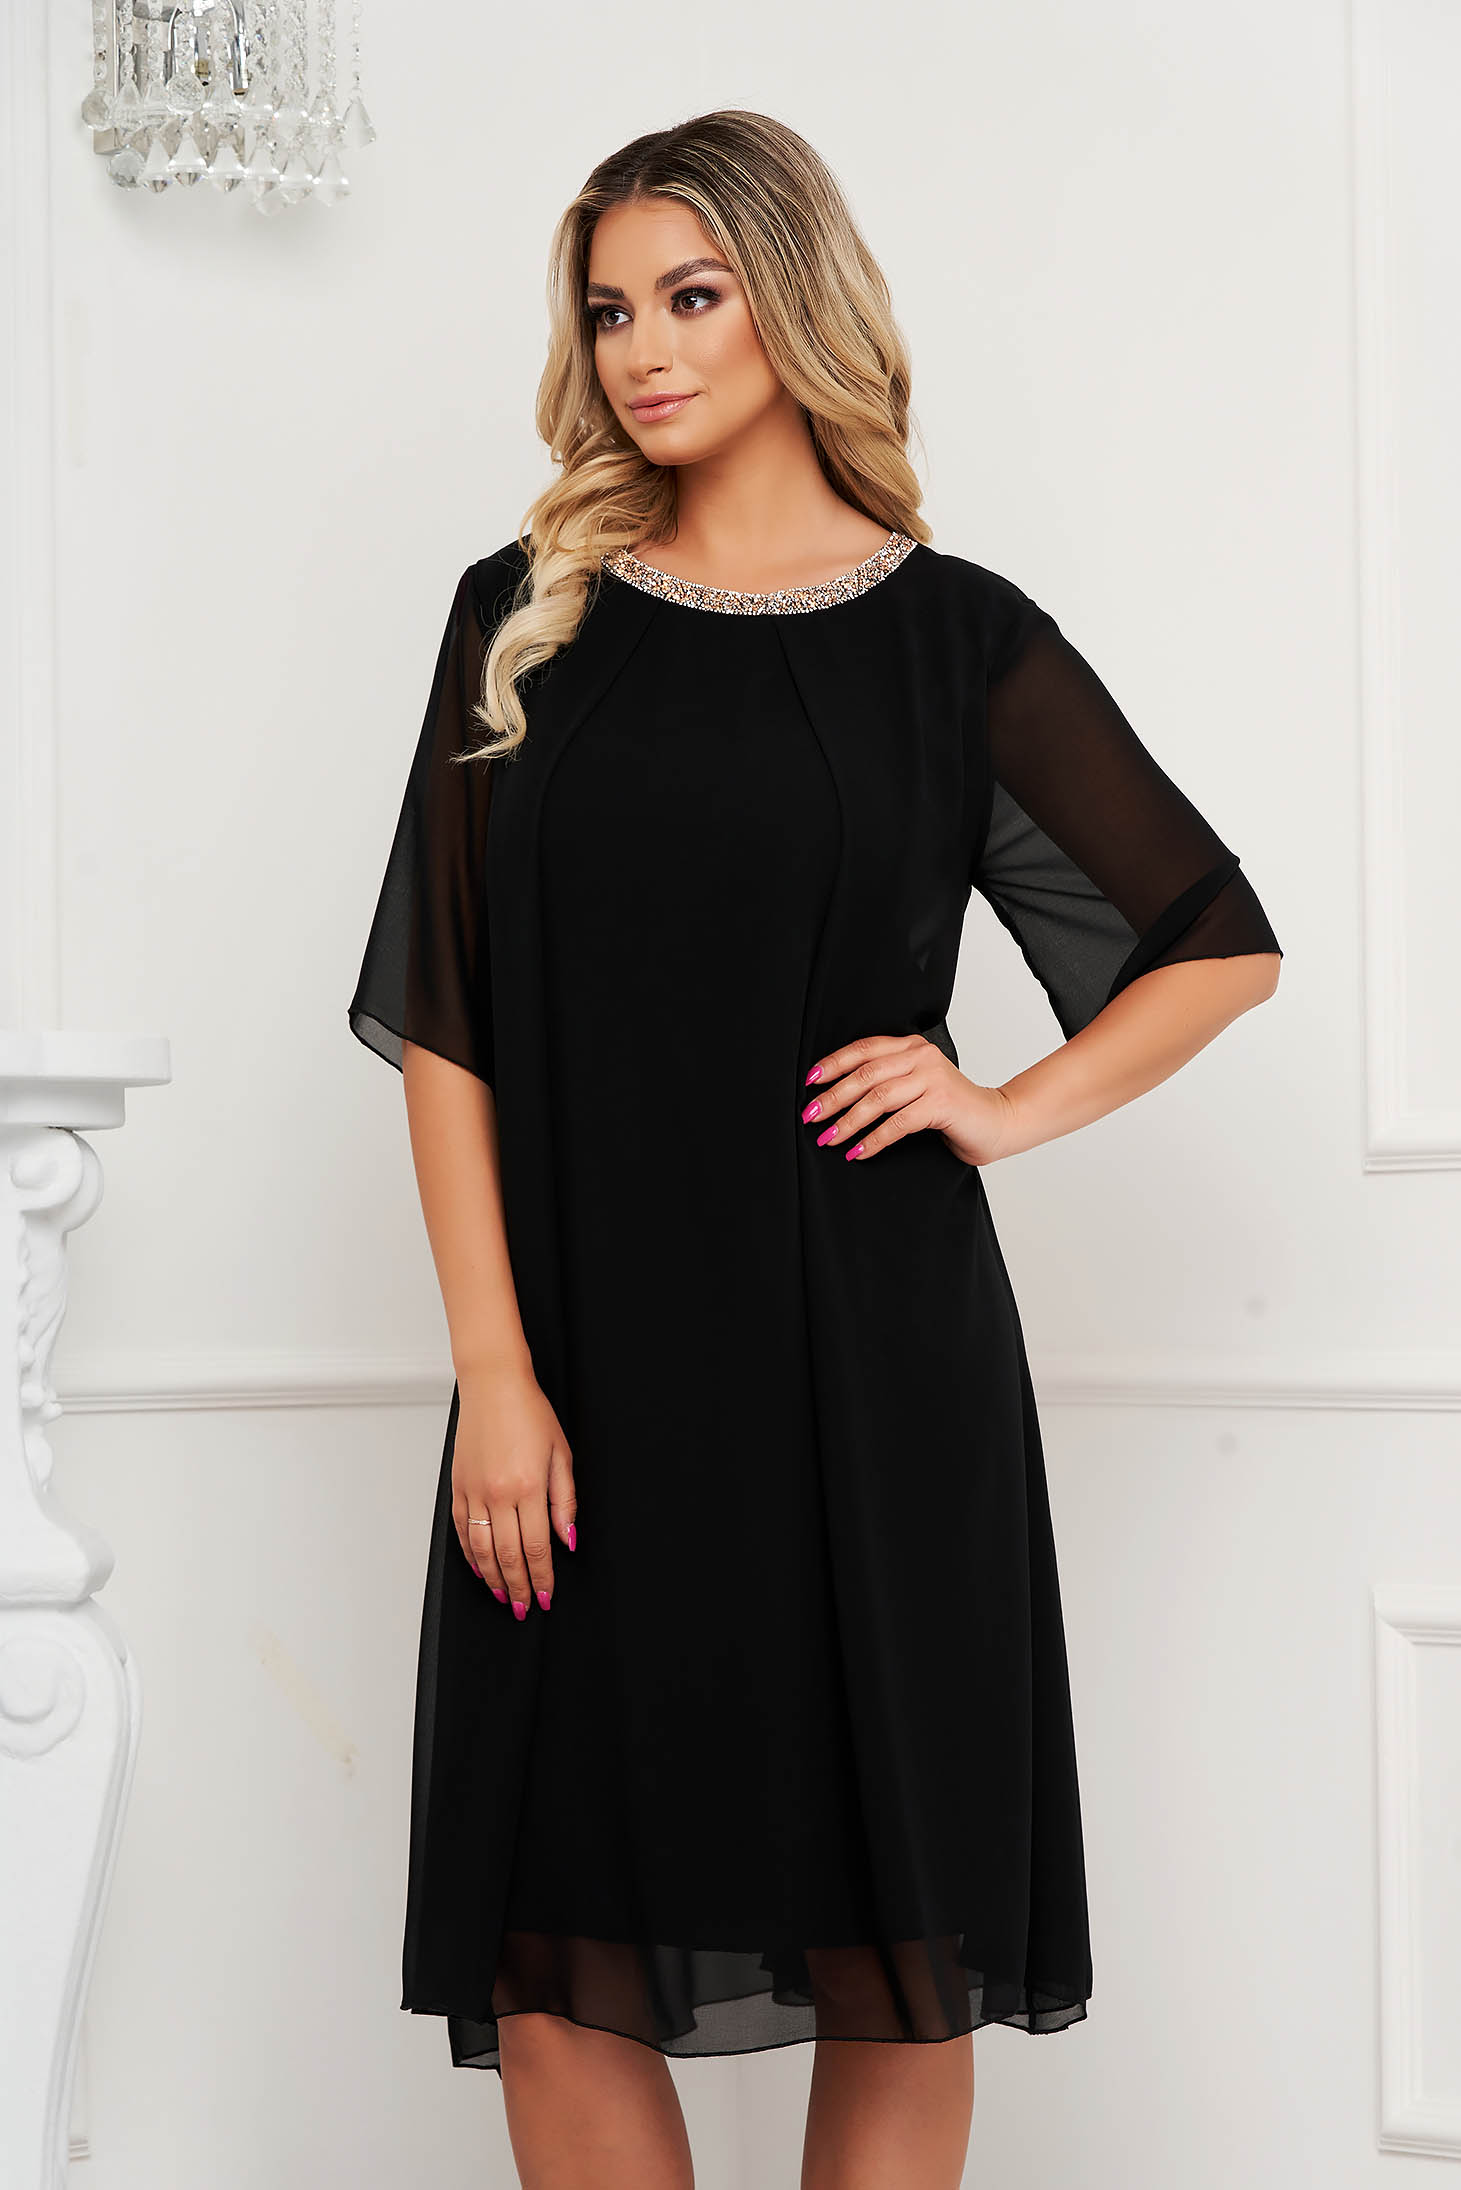 From veil fabric midi loose fit with crystal embellished details black dress